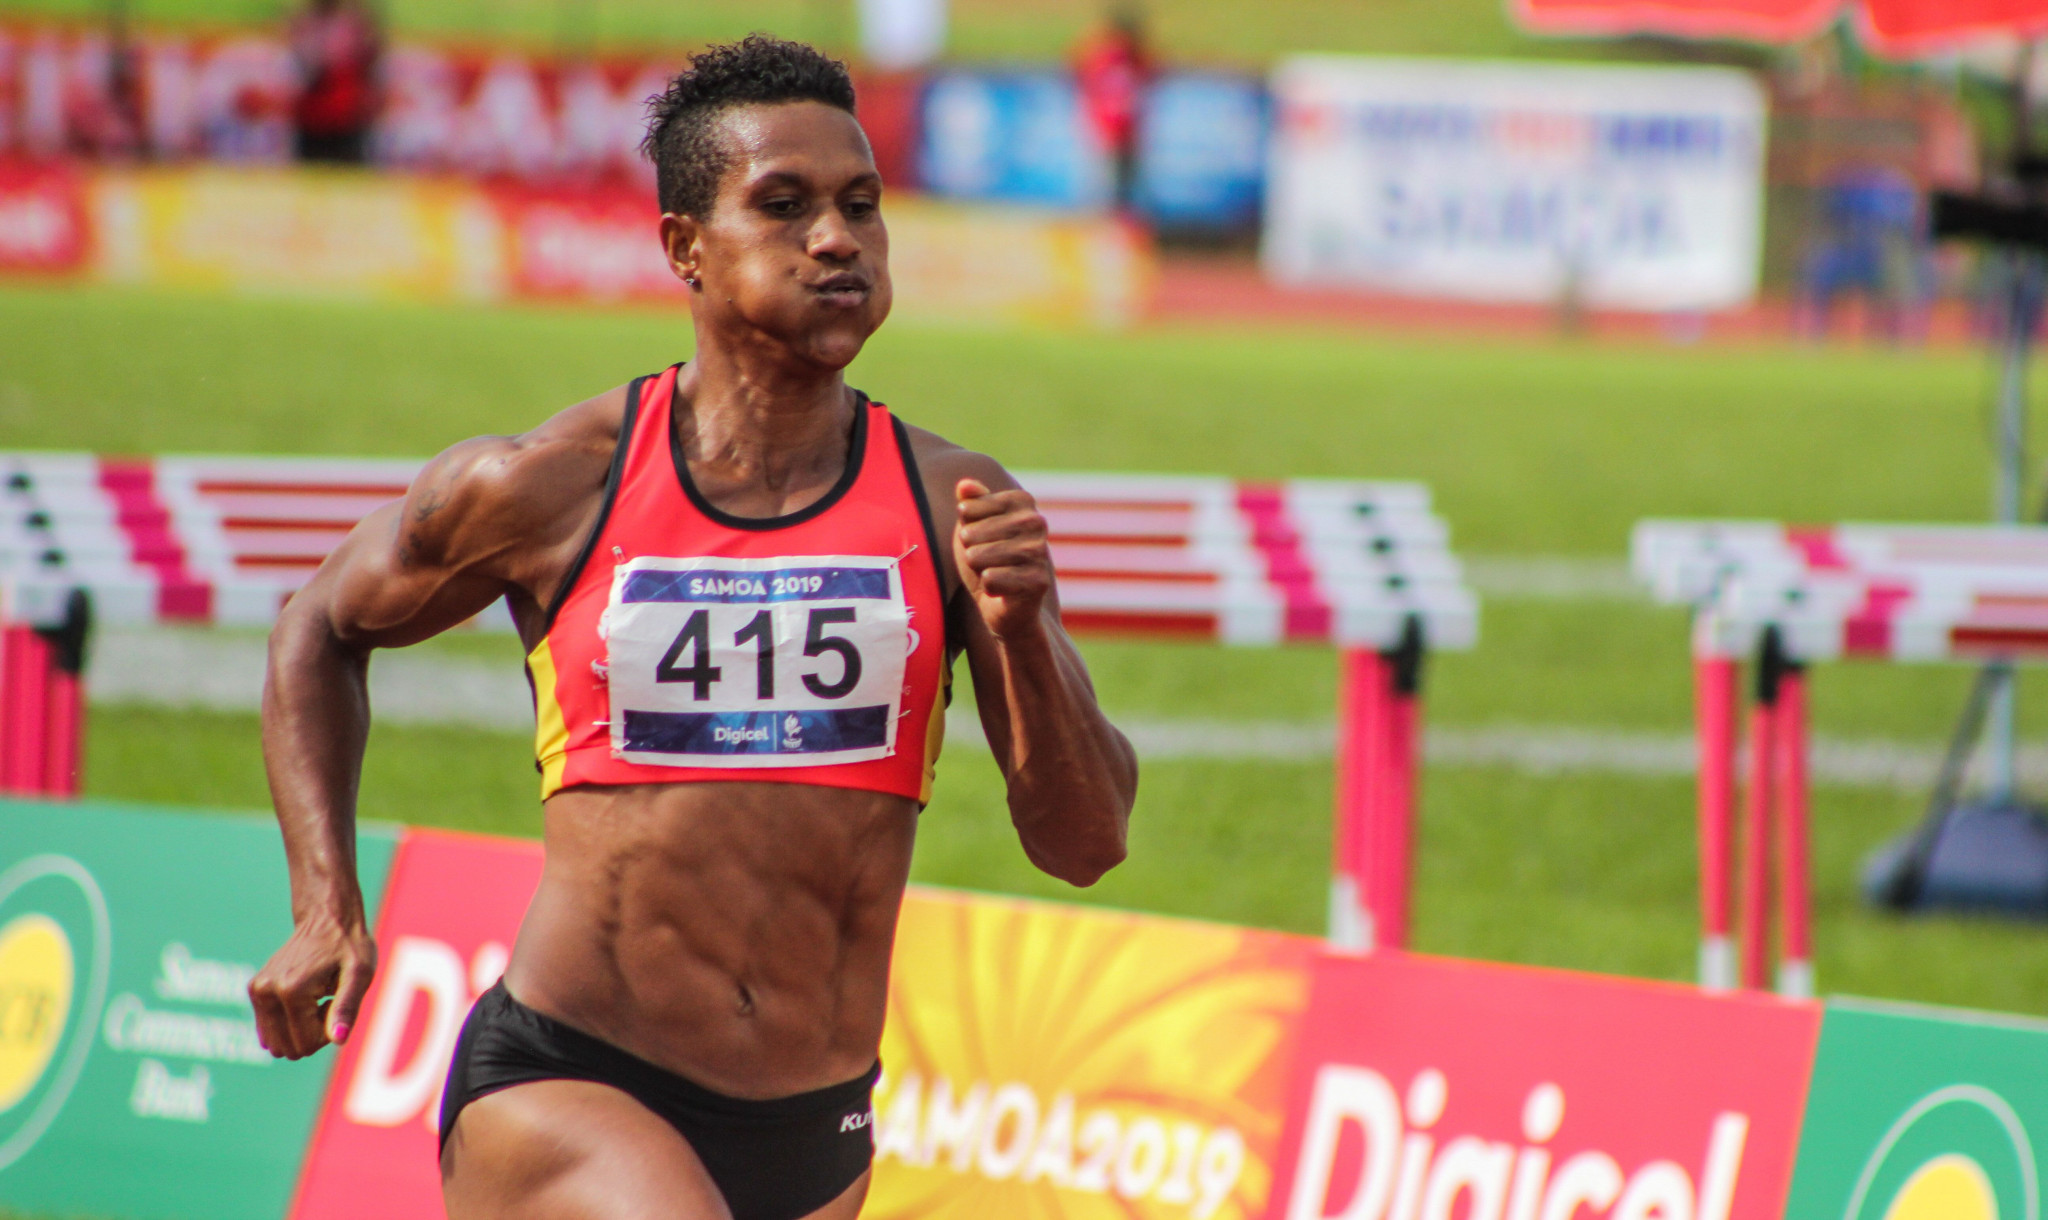 Papua New Guinea's Toea Wisil has written her name indelibly into Pacific Games history after she completed the triple-triple in the women's sprint events ©Samoa 2019